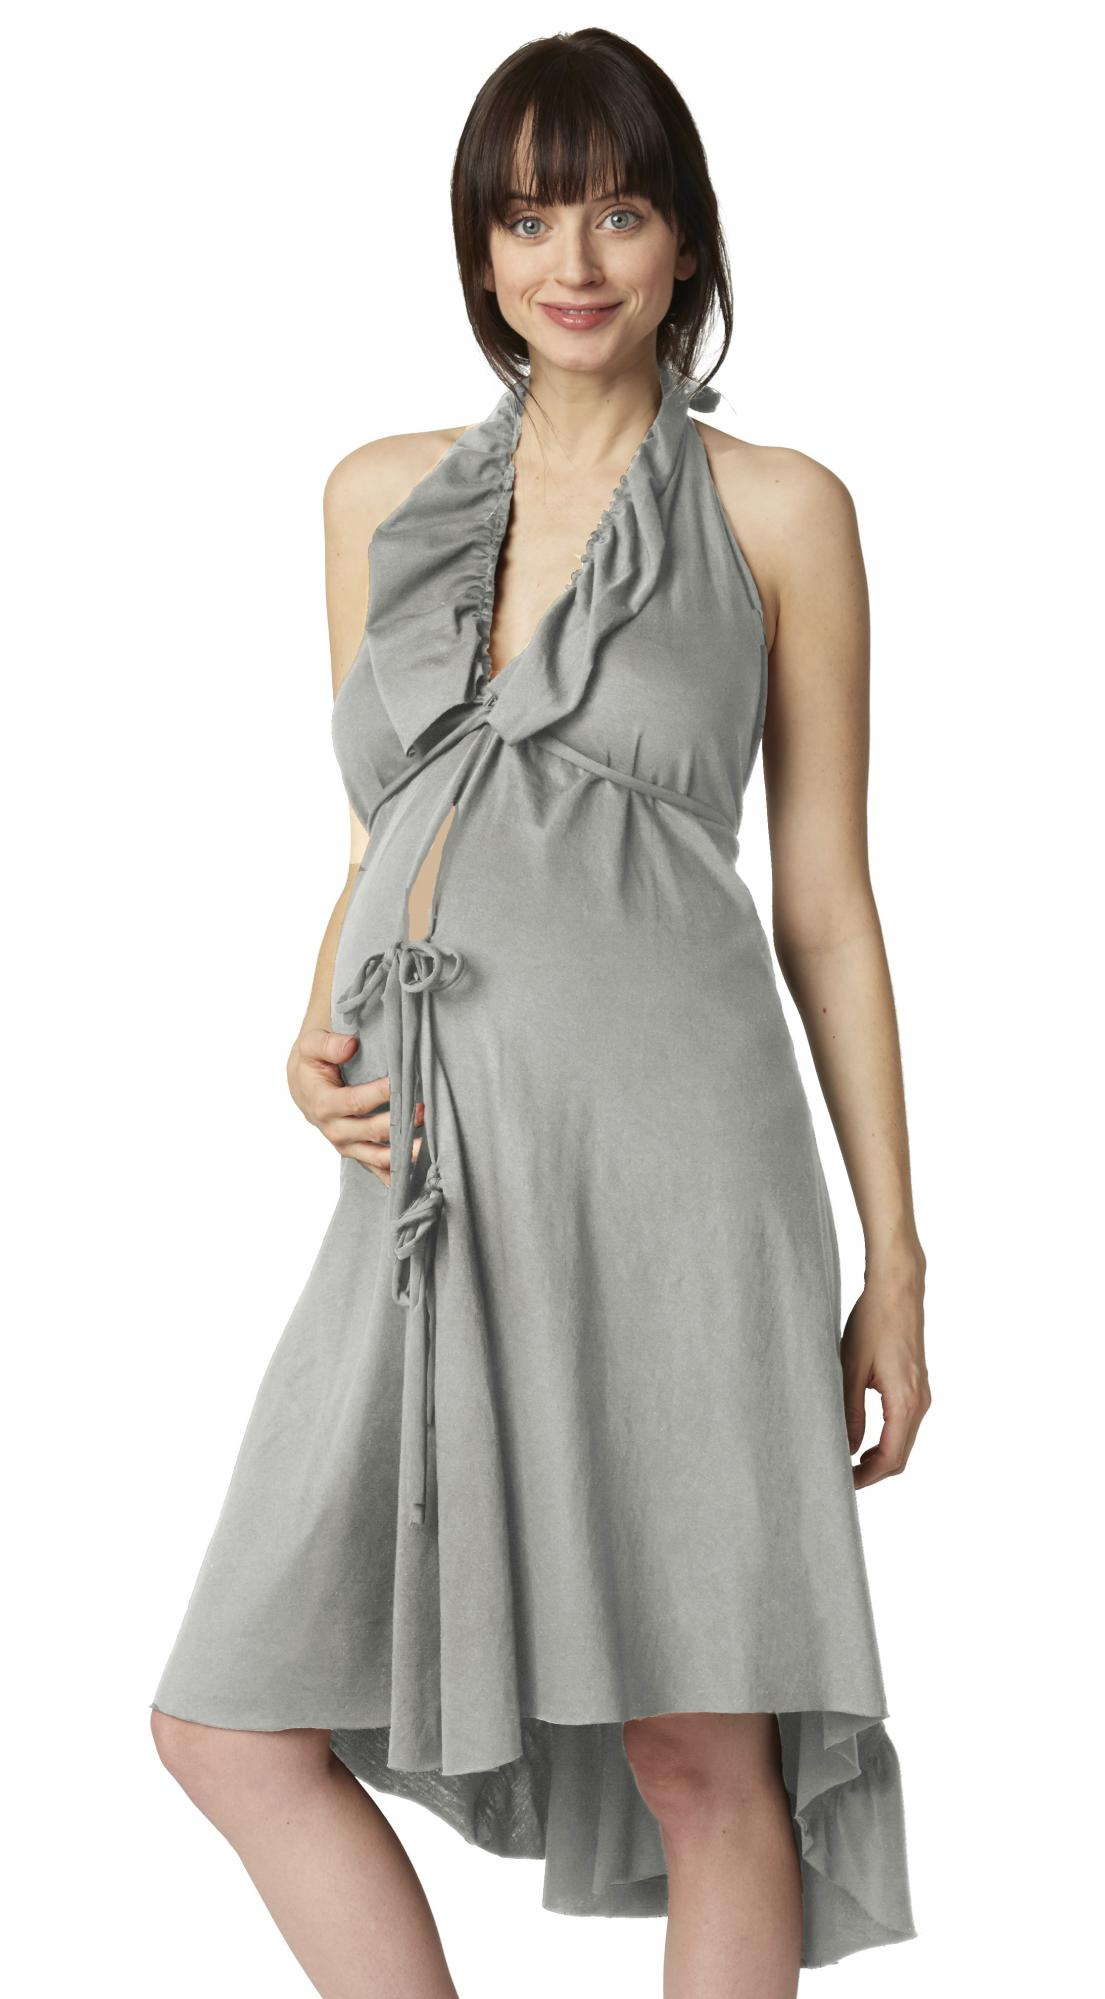 pretty-pushers-ruffle-labor-gown-moonlight-grey-2.jpg